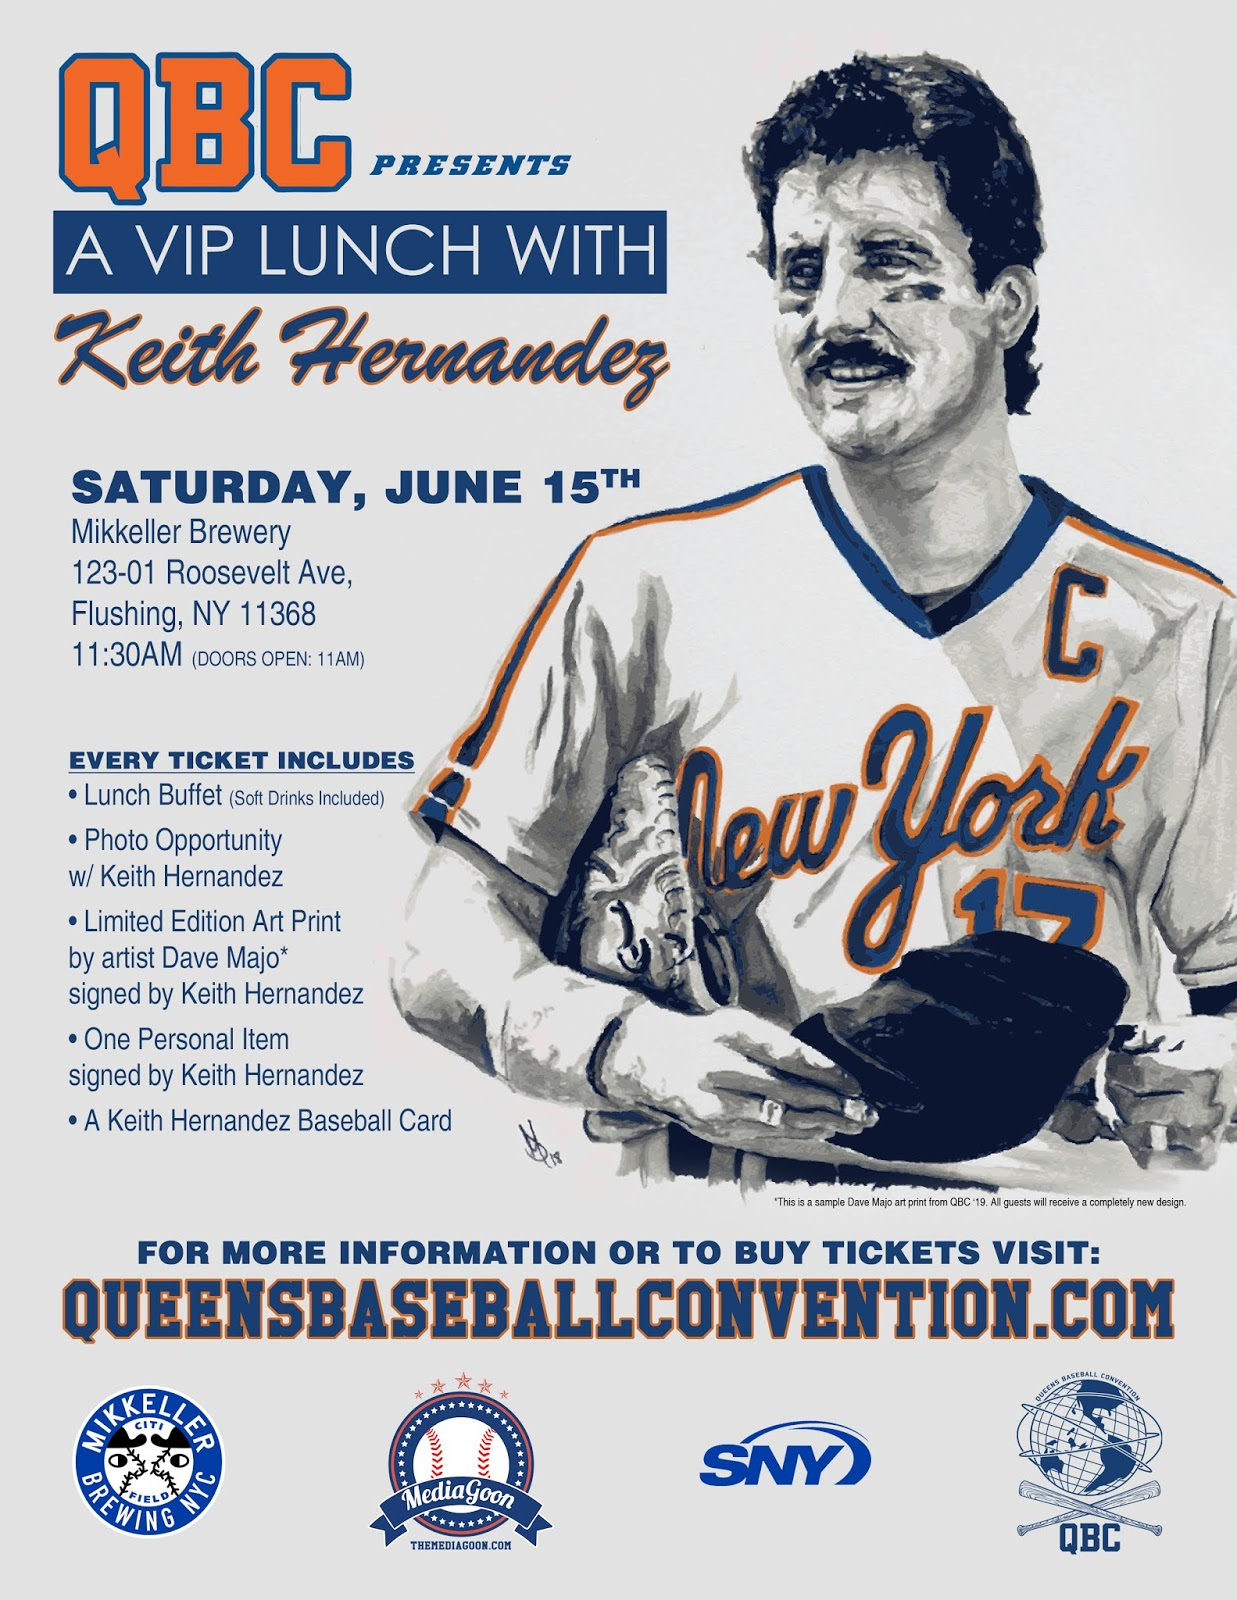 Themediagooncom At Qbconventions Lunch With Keith Hernandez